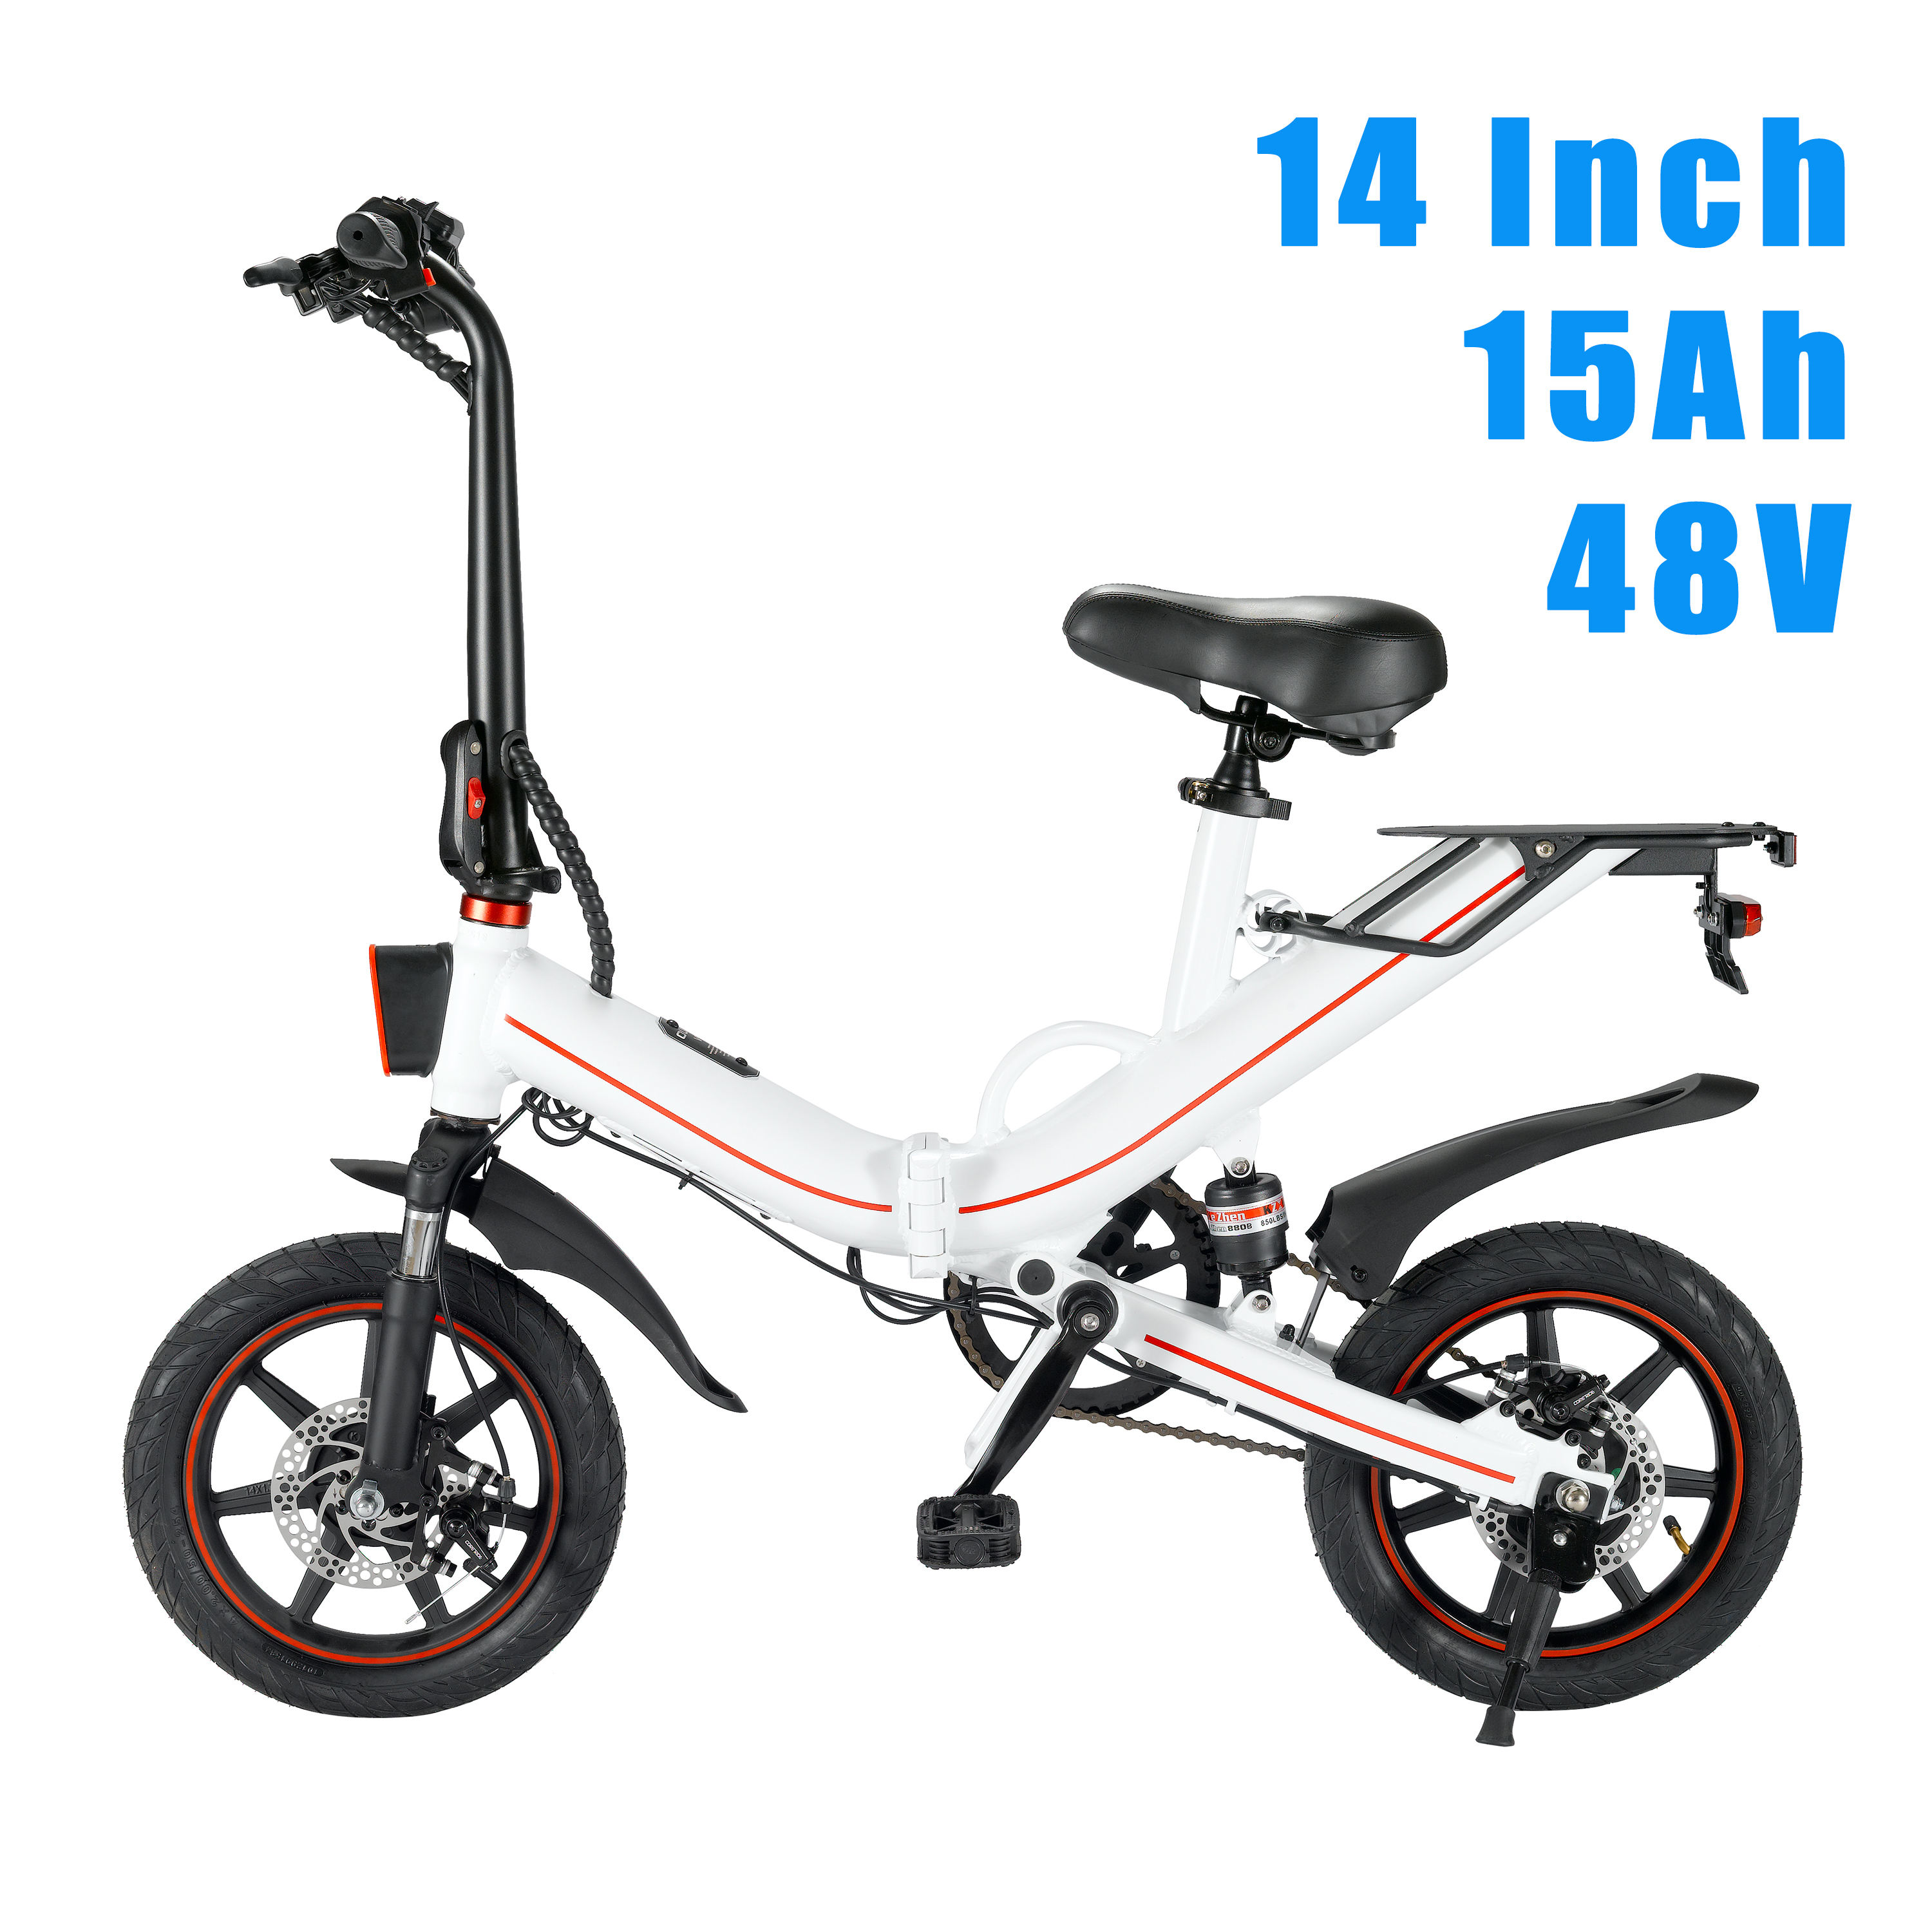 EUR Stock No Tax 400W Folding14inch Tire 2 Wheel Electric Bike 48V 15ah Removable BT Beach Cruise Booster Electric Bicycle